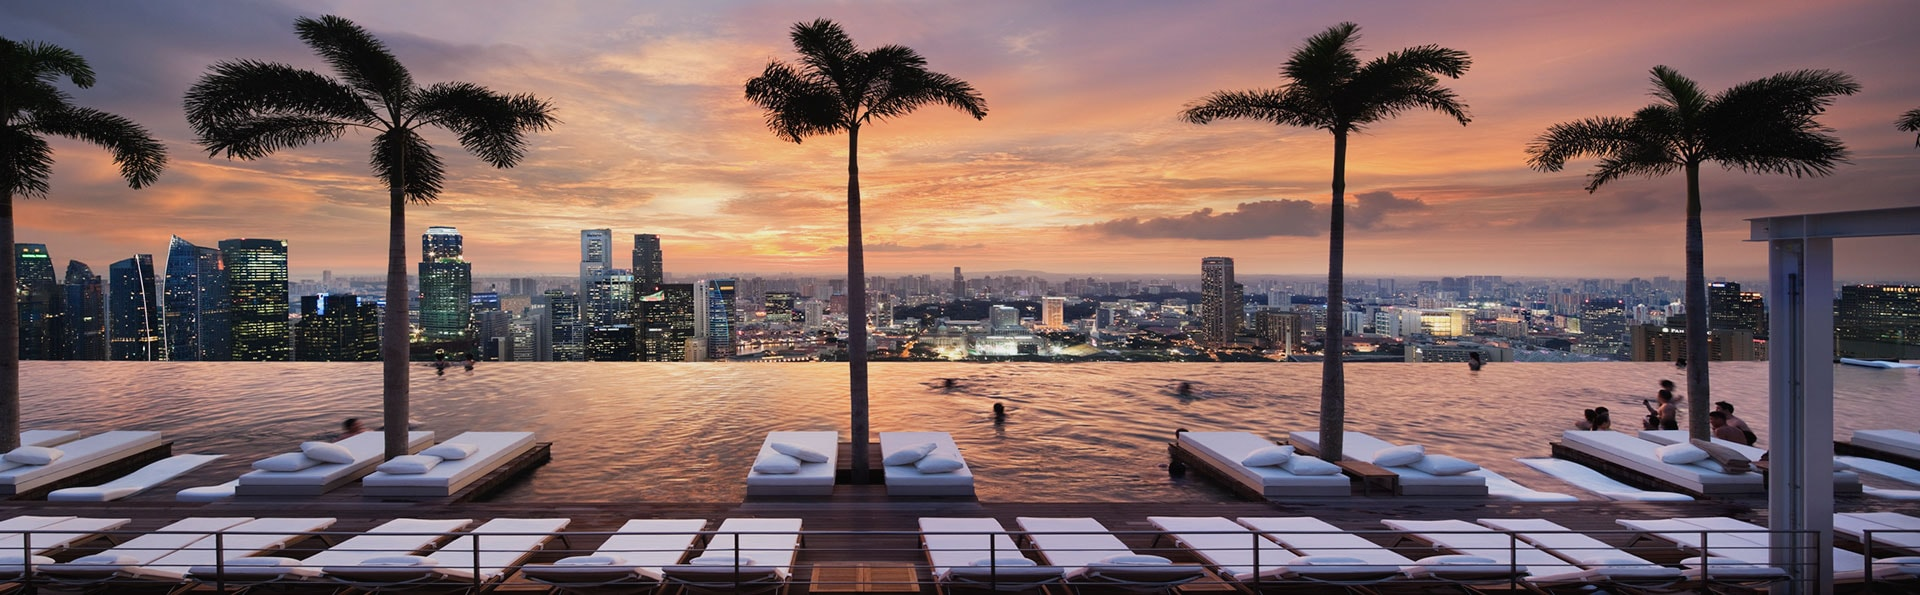 Study reveals what excites us most when travelling 5why - Singapore marina bay sands infinity pool ...